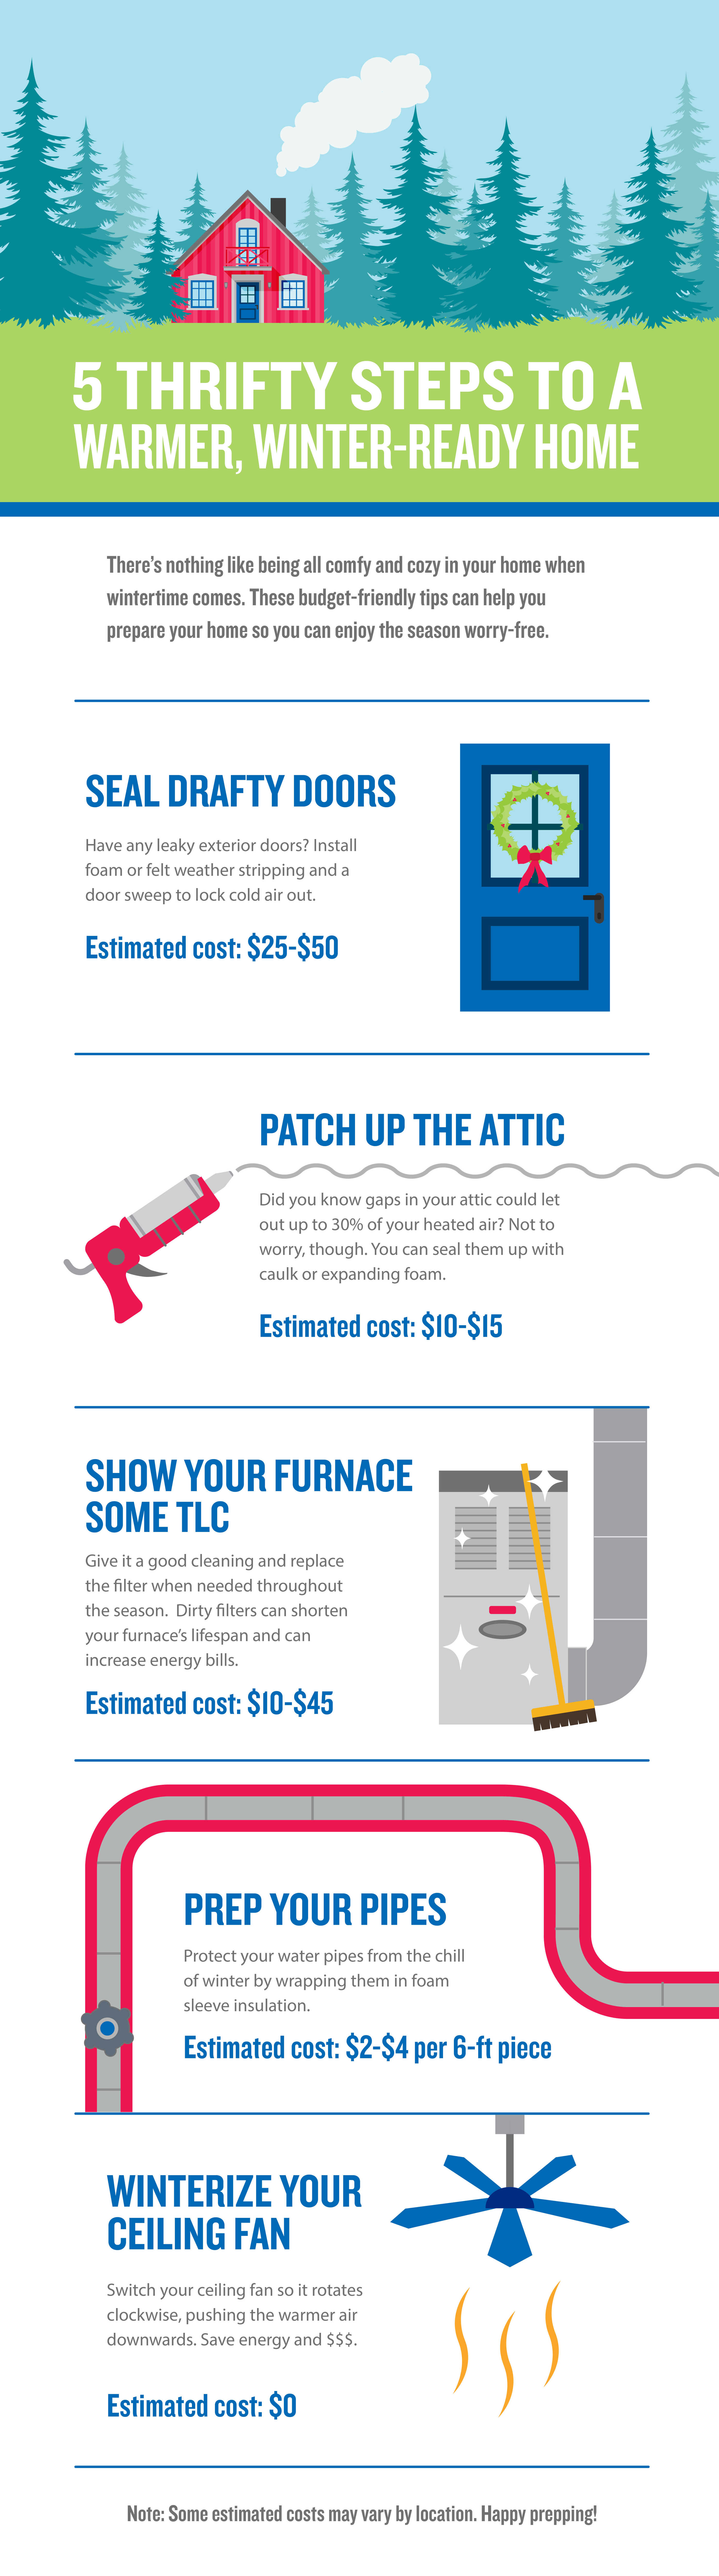 Winter Home prep tips infographic